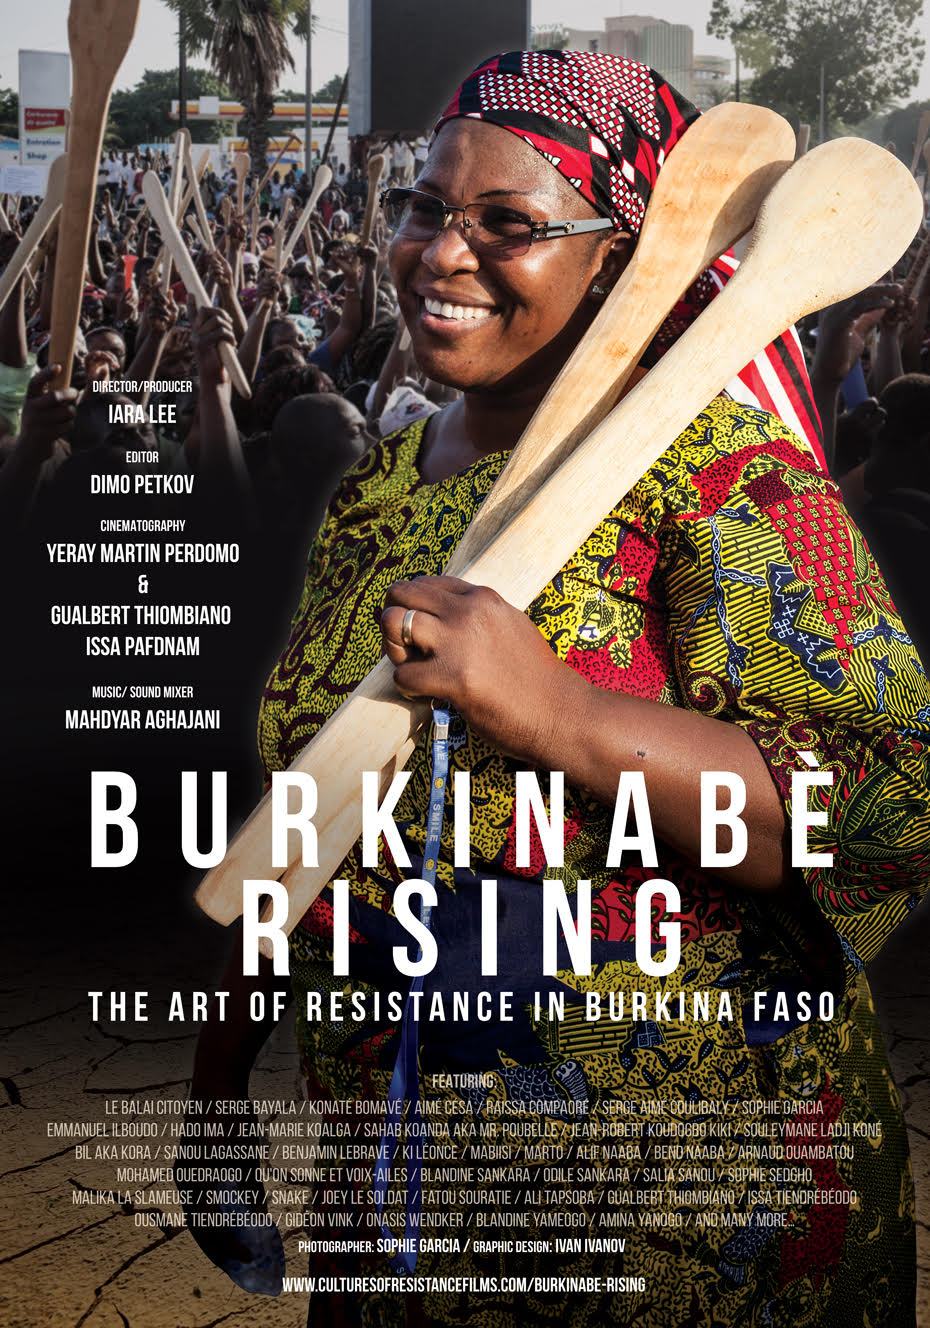 BURKINABÉ RISING POSTCARD/GRAPHIC